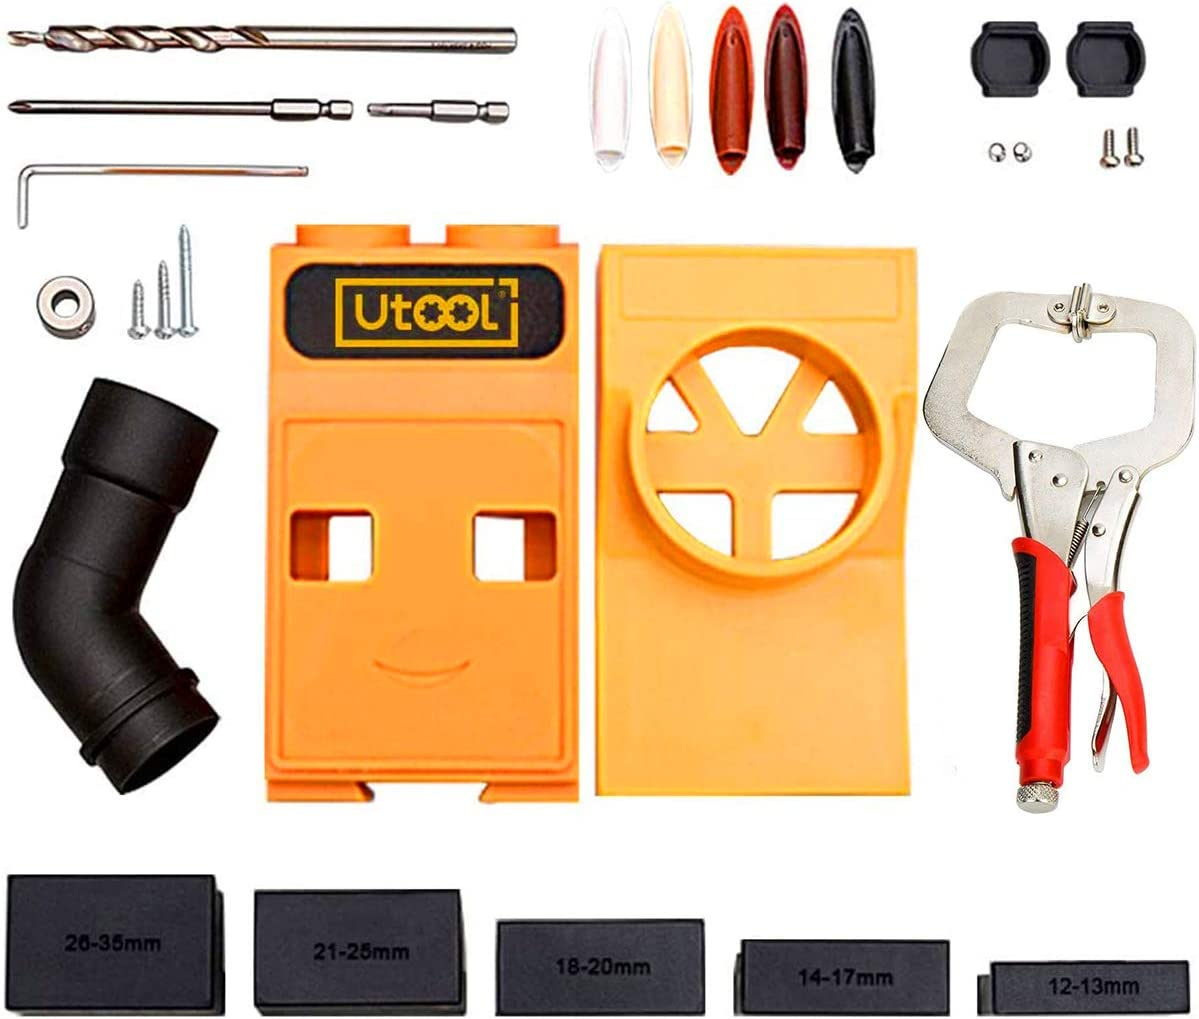 UTOOL Pocket Hole Jig Kit with Gui Genuine Free Shipping Drill Clamp Face Woodworking 5 popular